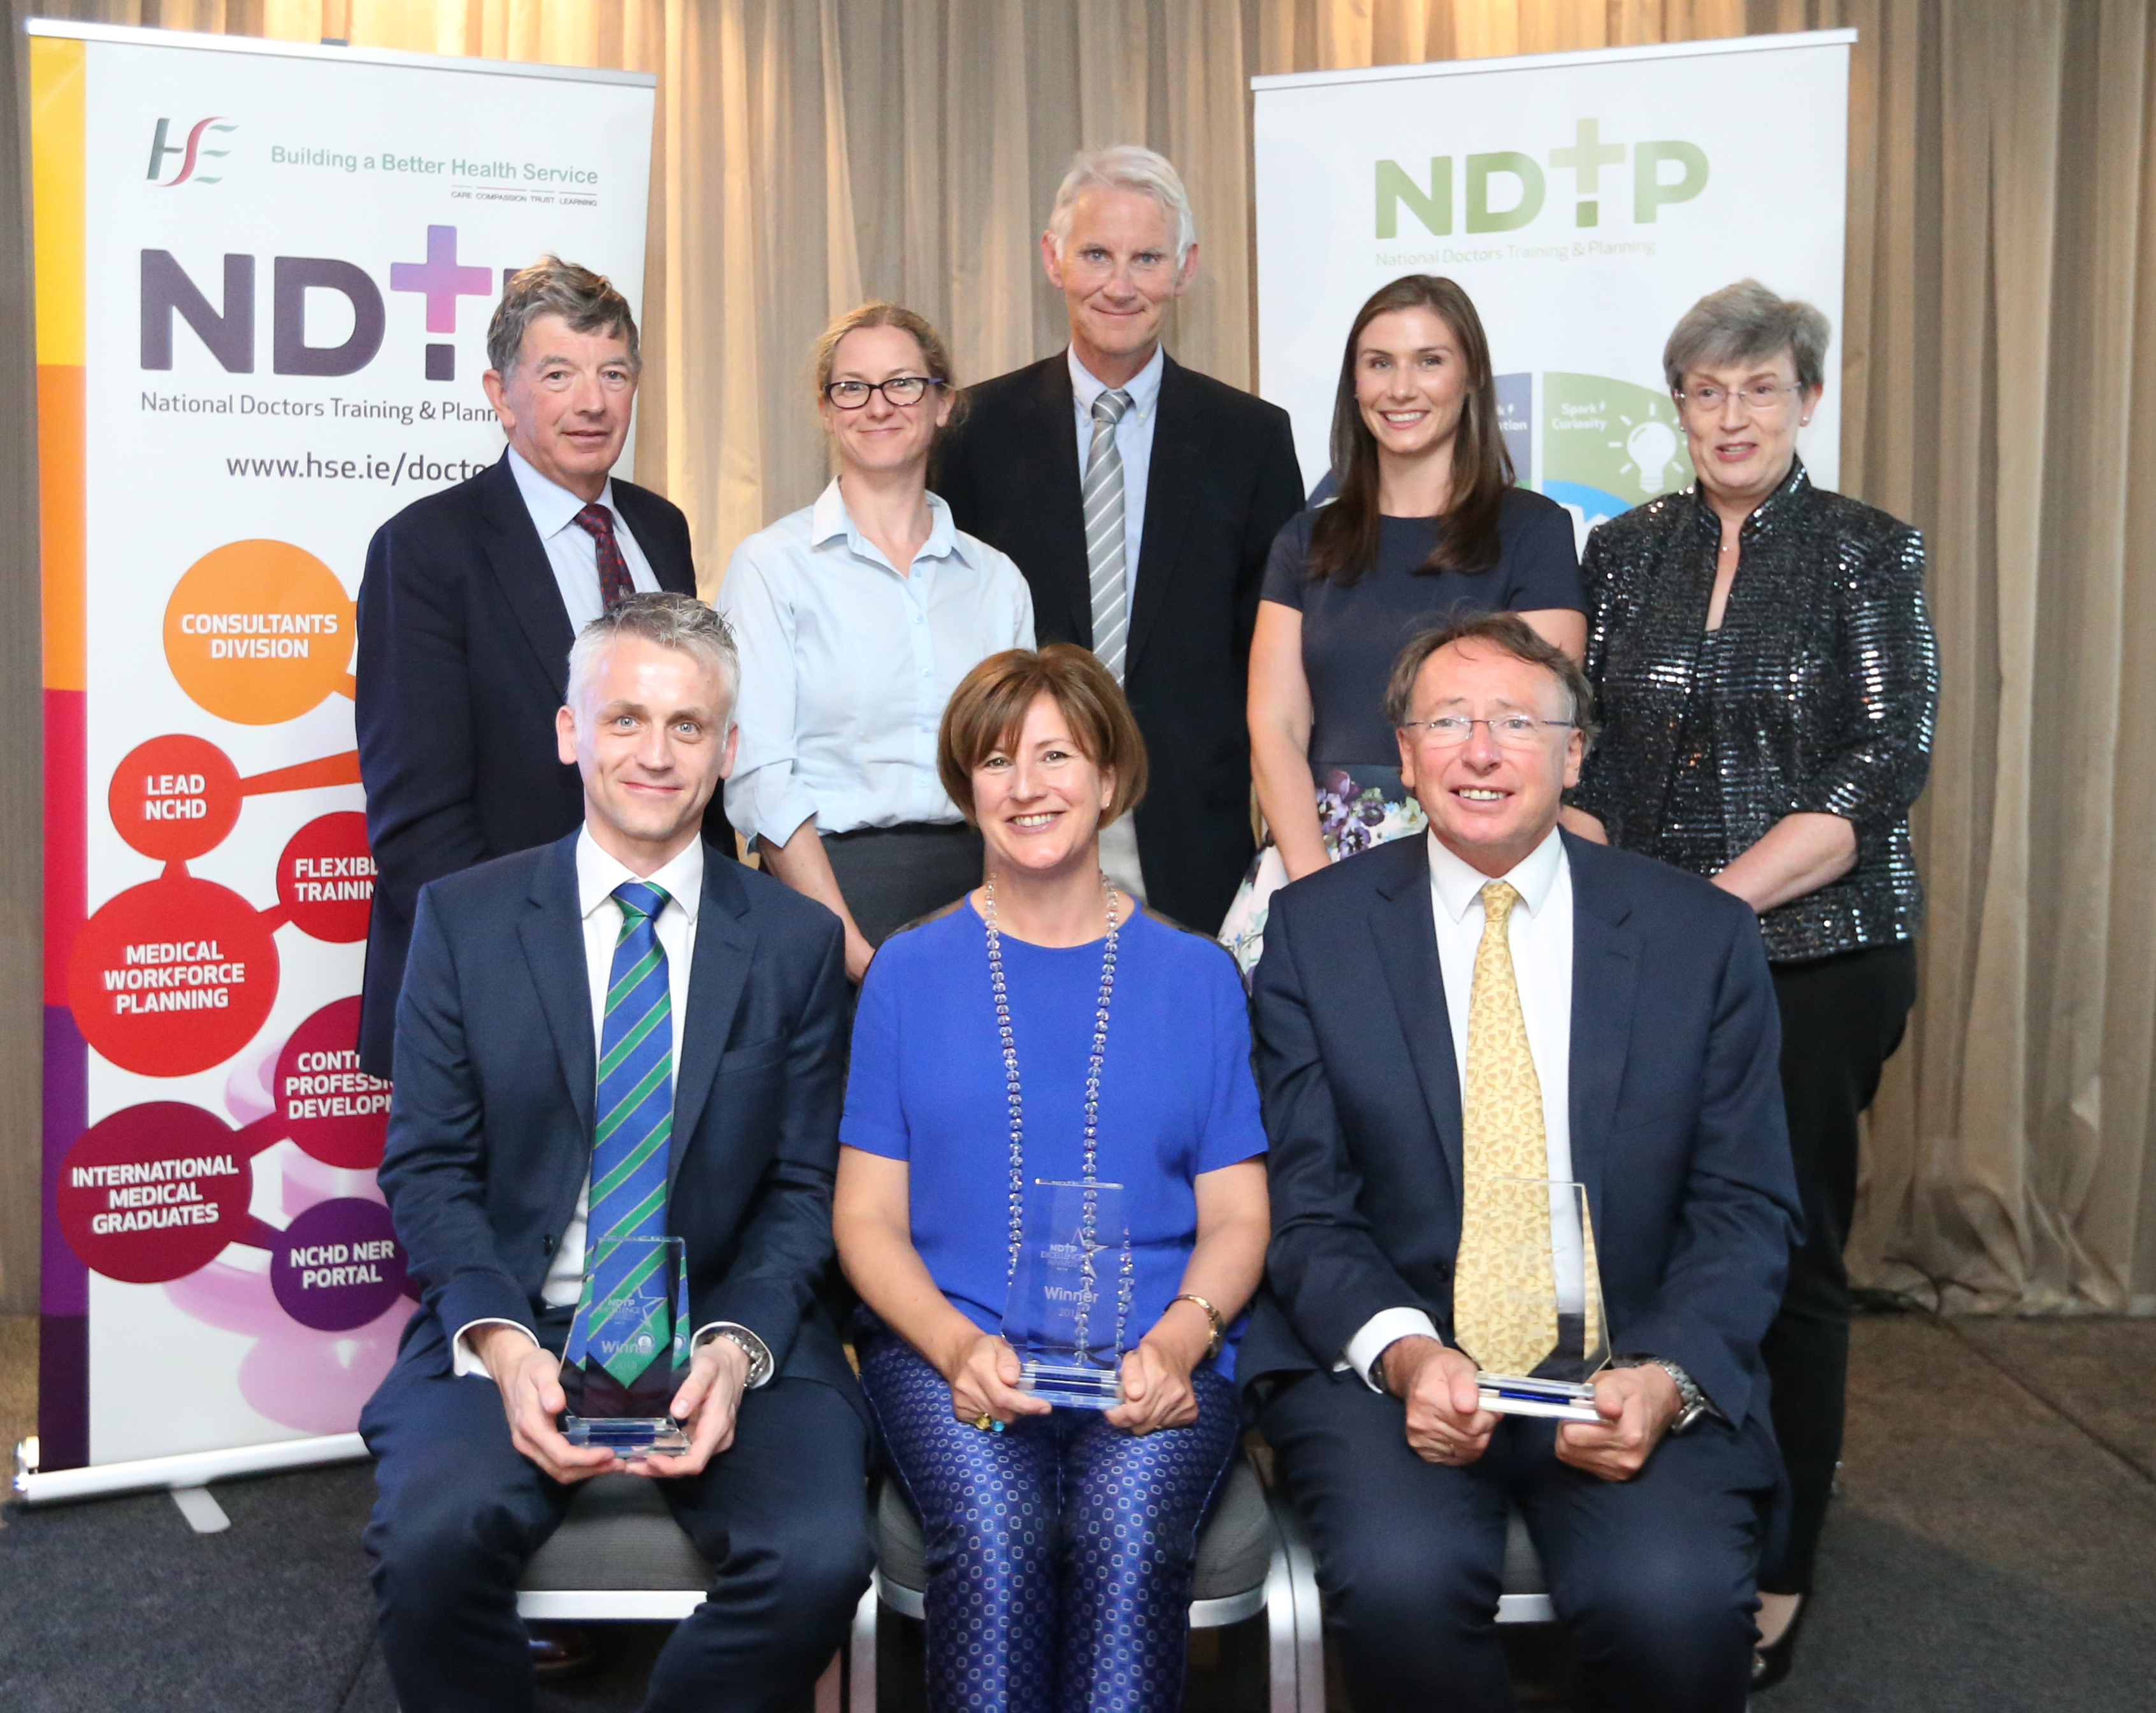 \Lead NCHDs winners 2018